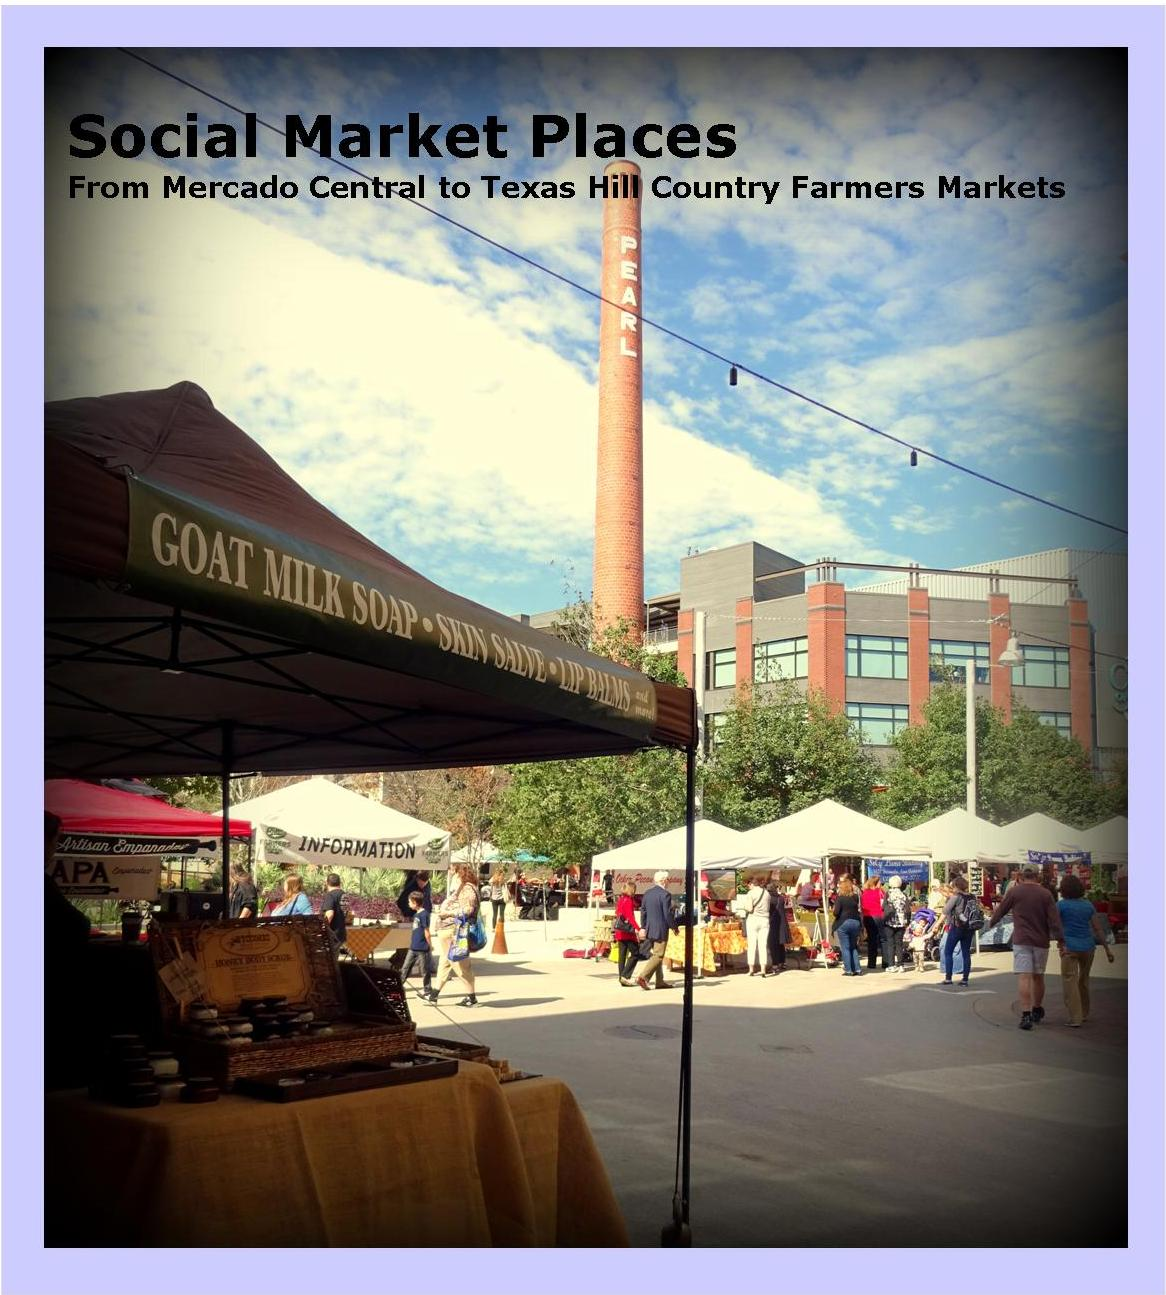 Texas Hill Country Girlfriends Social Market Places